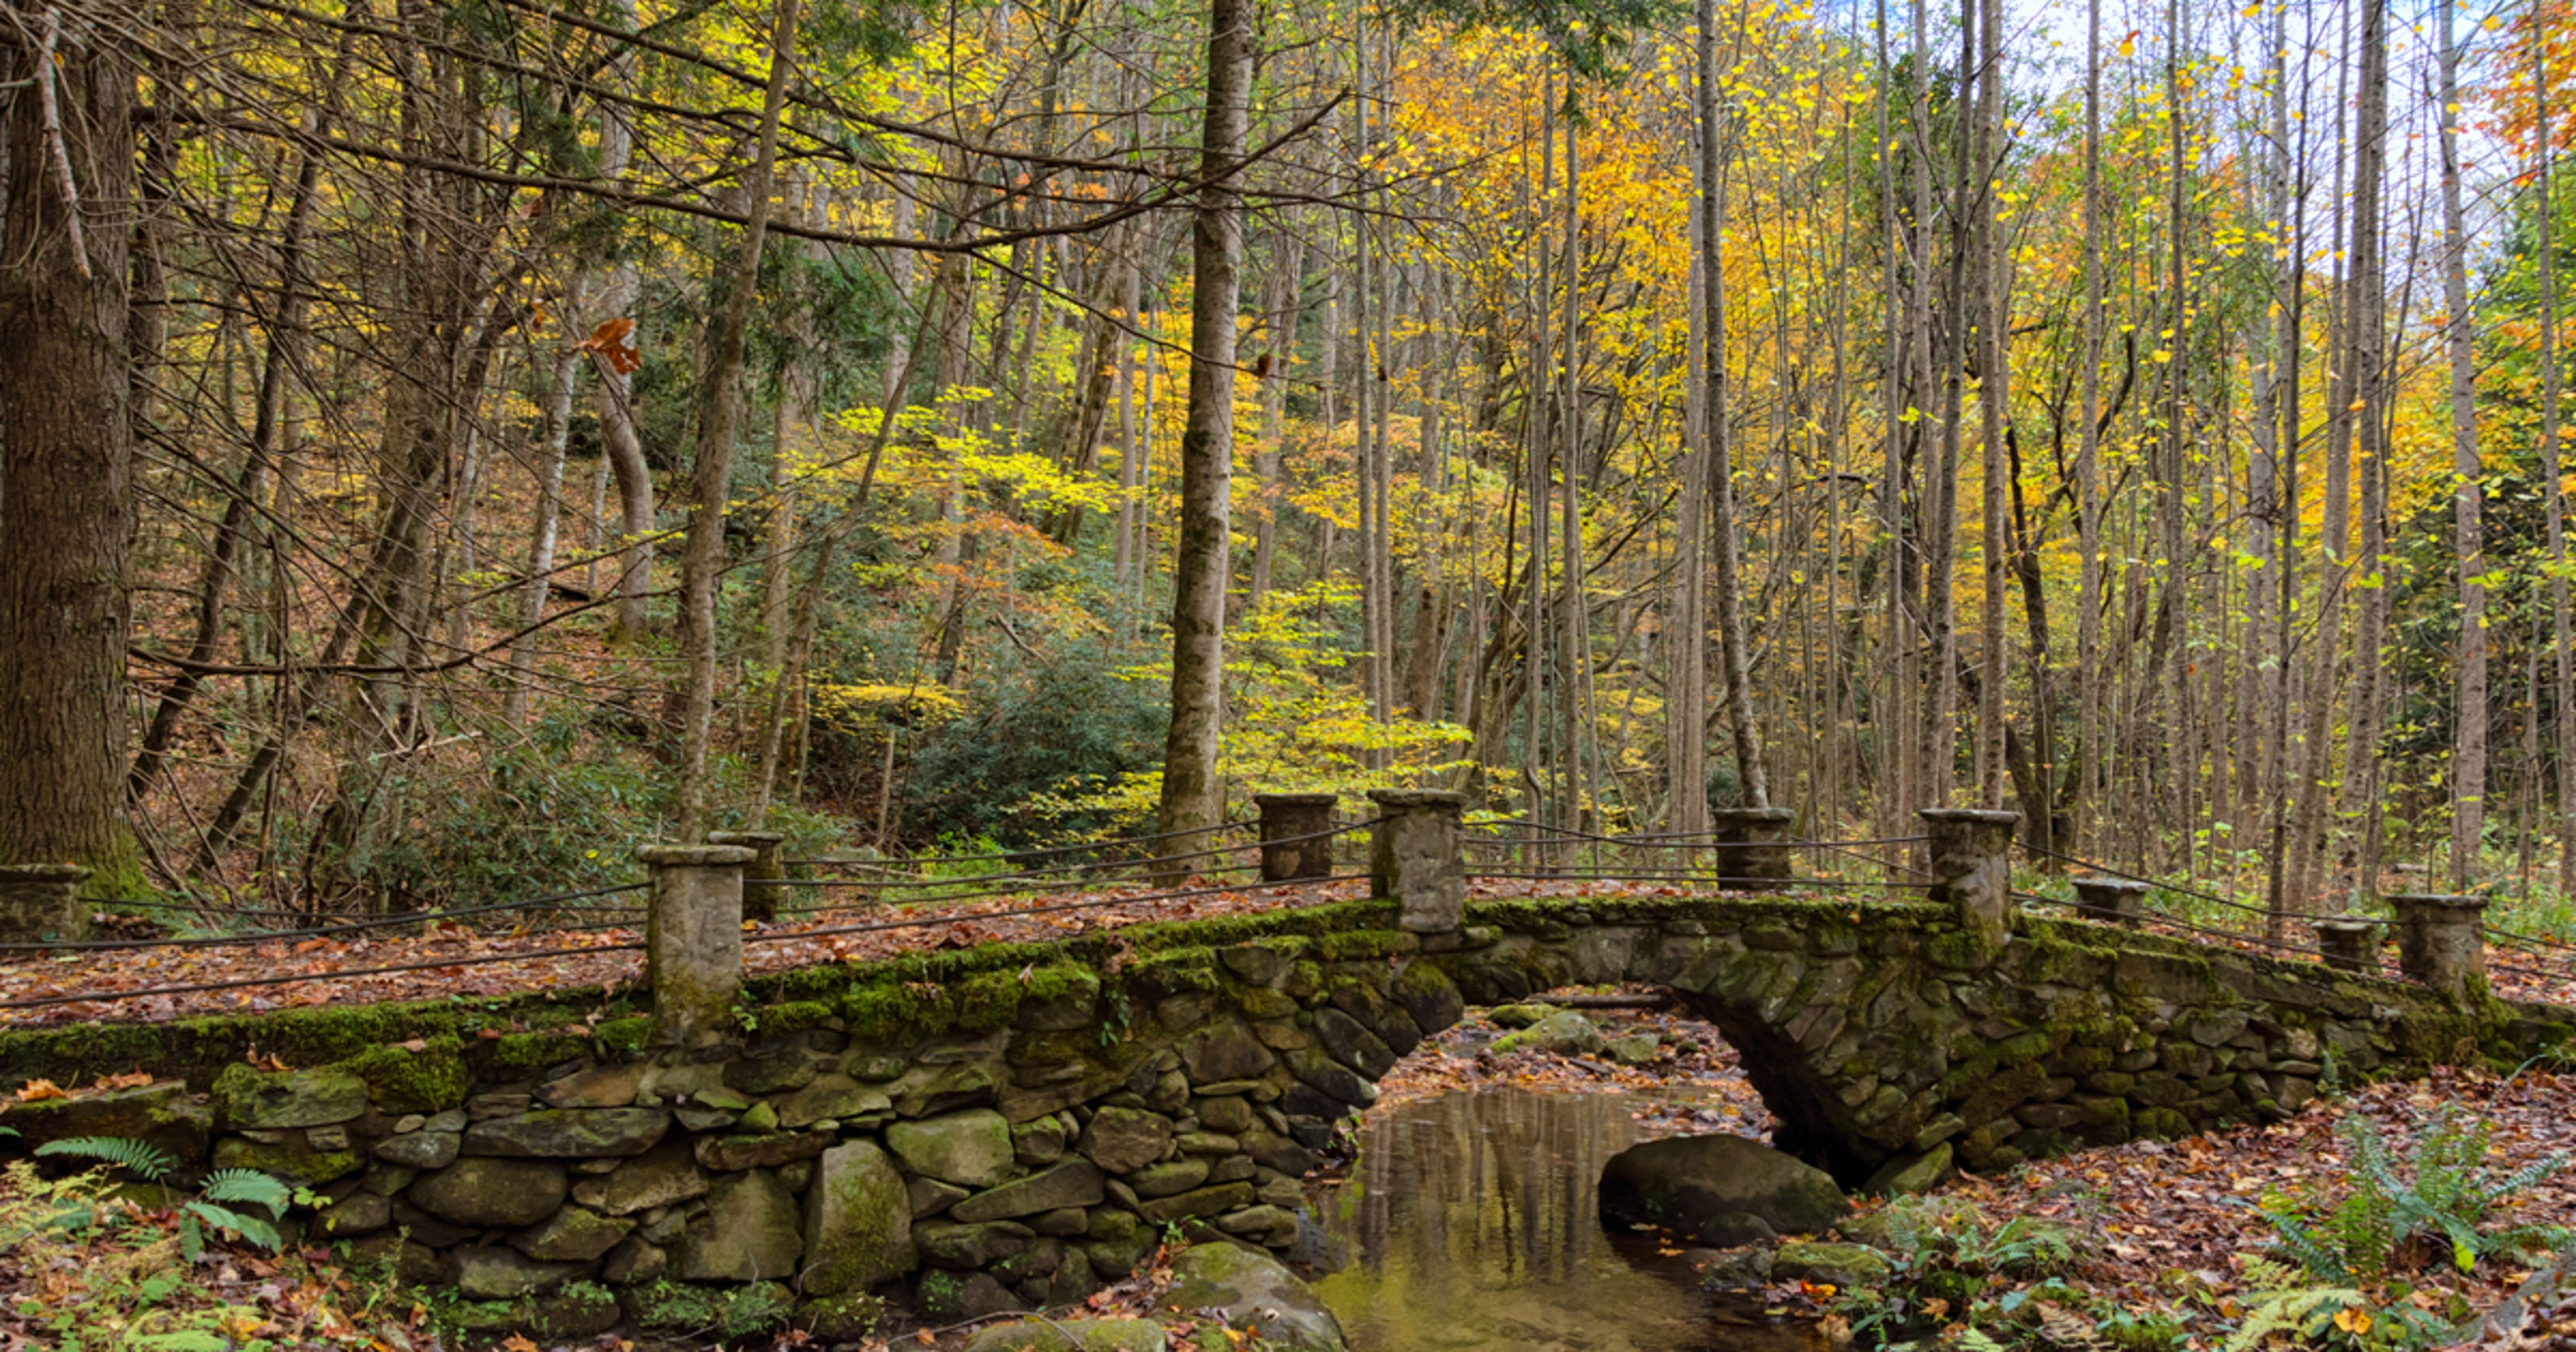 Fall colors at peak in Tennessee Valley this weekend